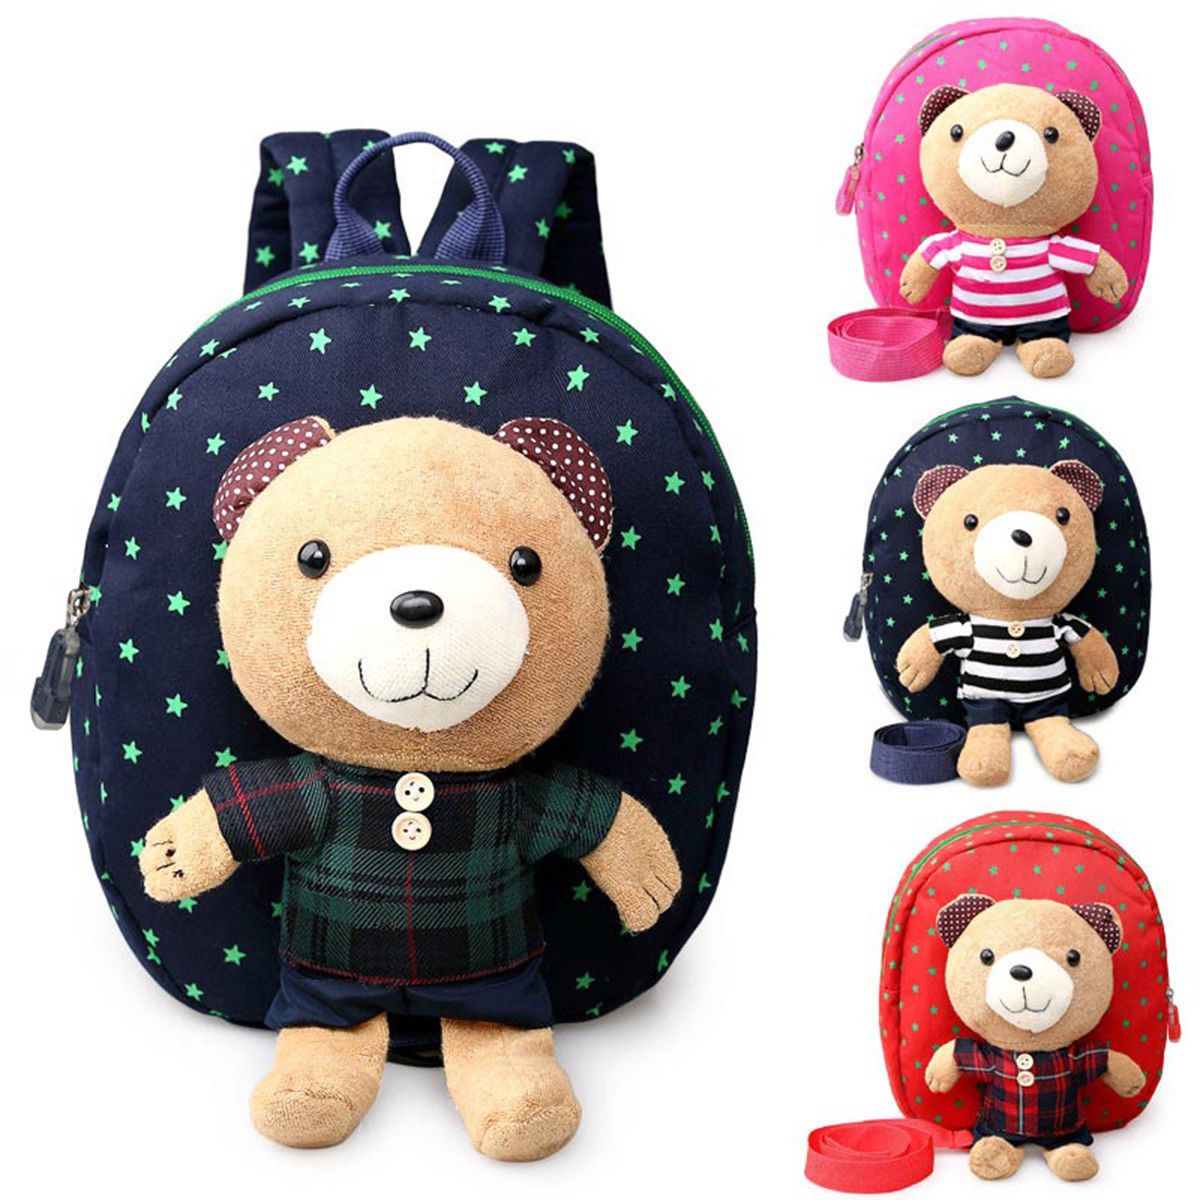 d060bfc98eb8795ff8585b61665b8537 $3 99 baby kid toddler keeper walking safety harness backpack